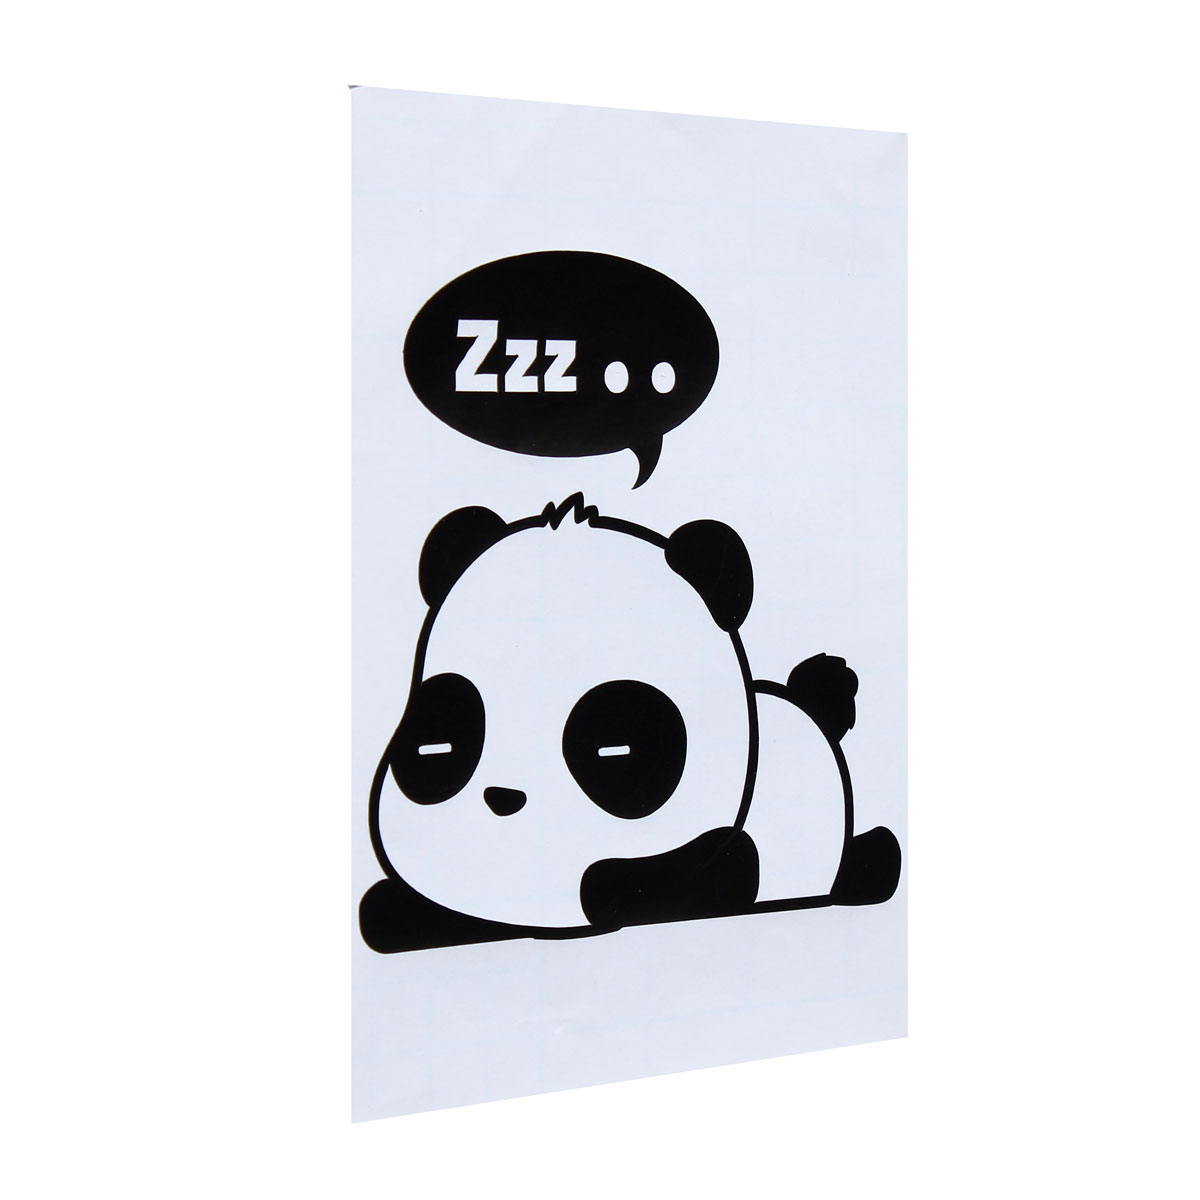 sticker autocollant mural petie panda animal adh sif. Black Bedroom Furniture Sets. Home Design Ideas